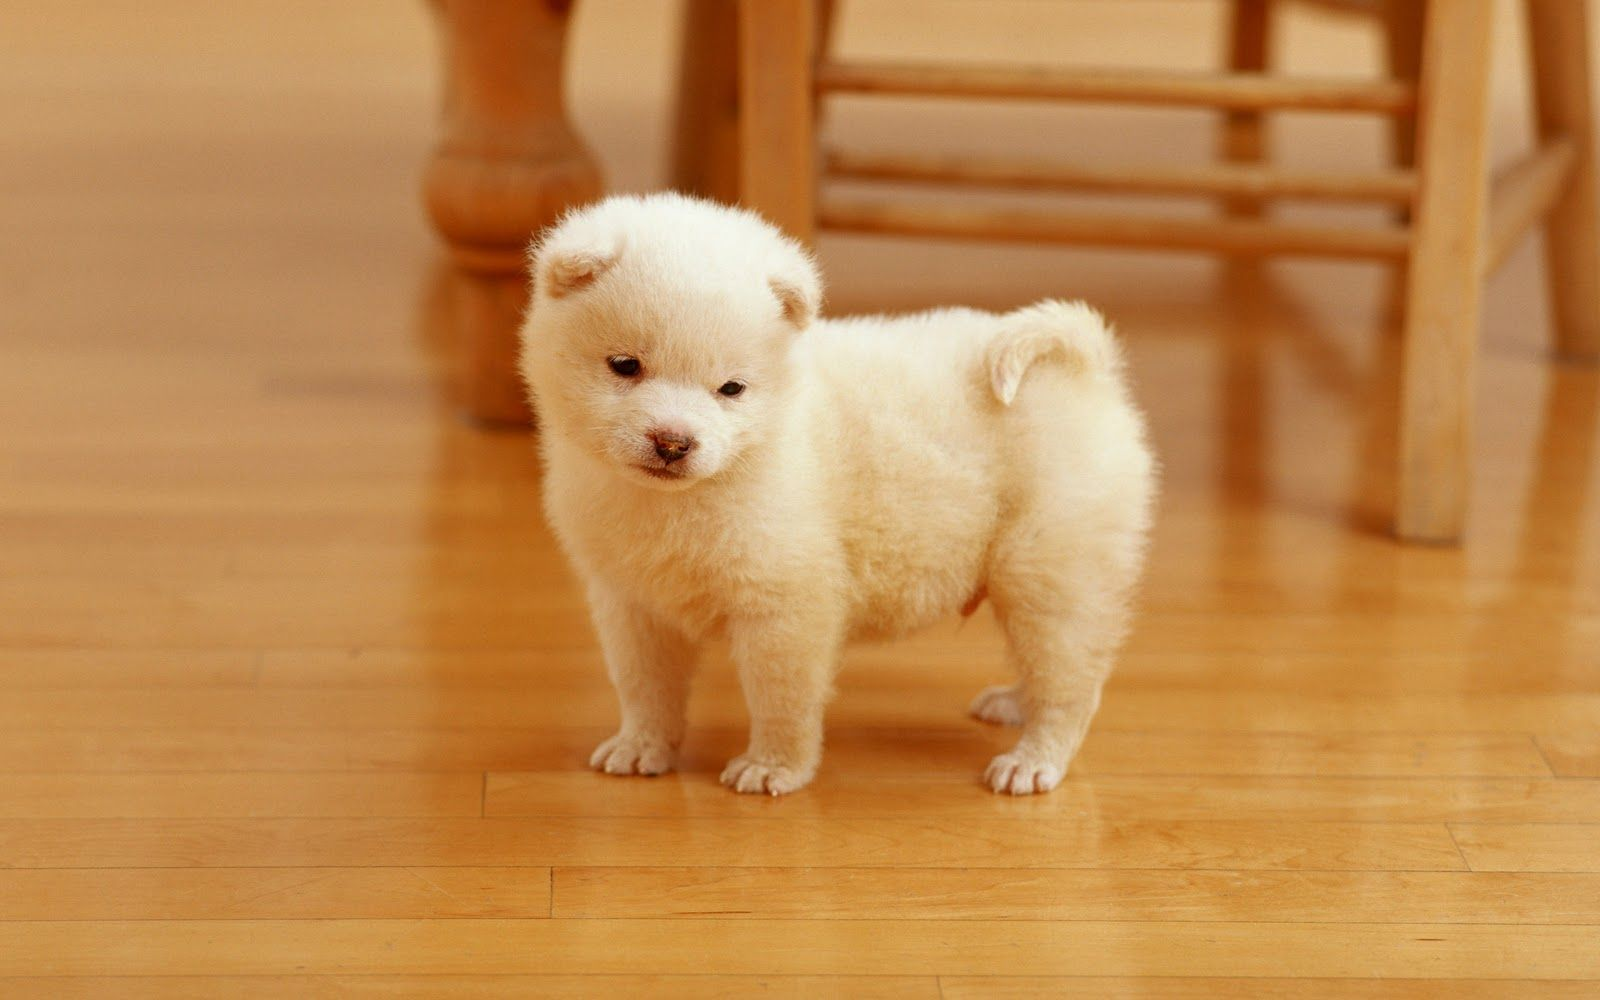 cutest+puppy | cutest puppy wide screen hd wallpaper | walls 9